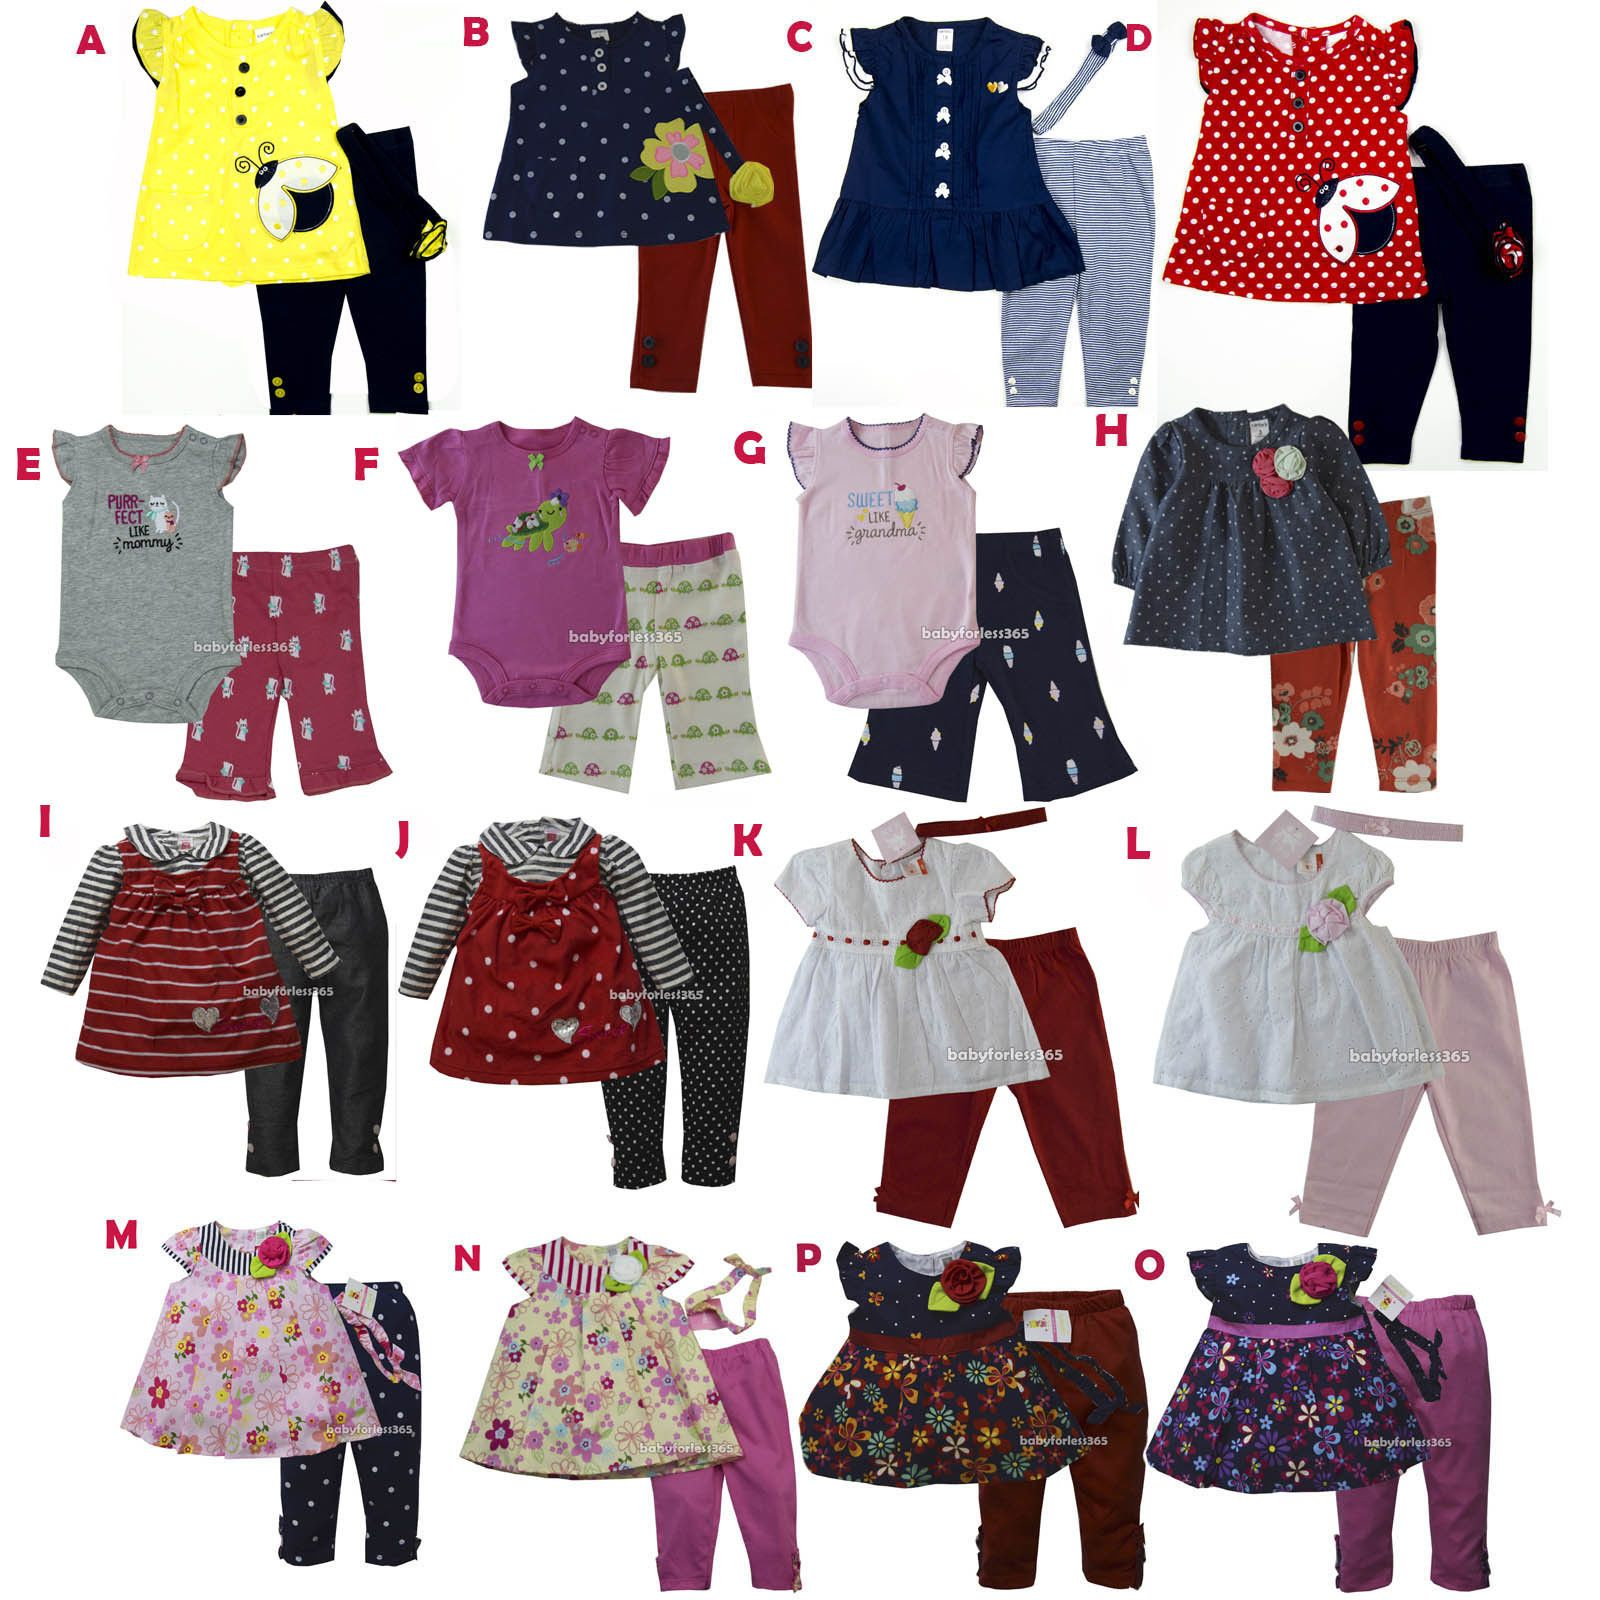 3b62495e8169c Girls Clothing Newborn-5T 147192: New Carter S Baby Girls Outfit Clothes  Shirt Legging Size 3 6 9 12 18 24 Months -> BUY IT NOW ONLY: $11.39 on  #eBay #girls ...